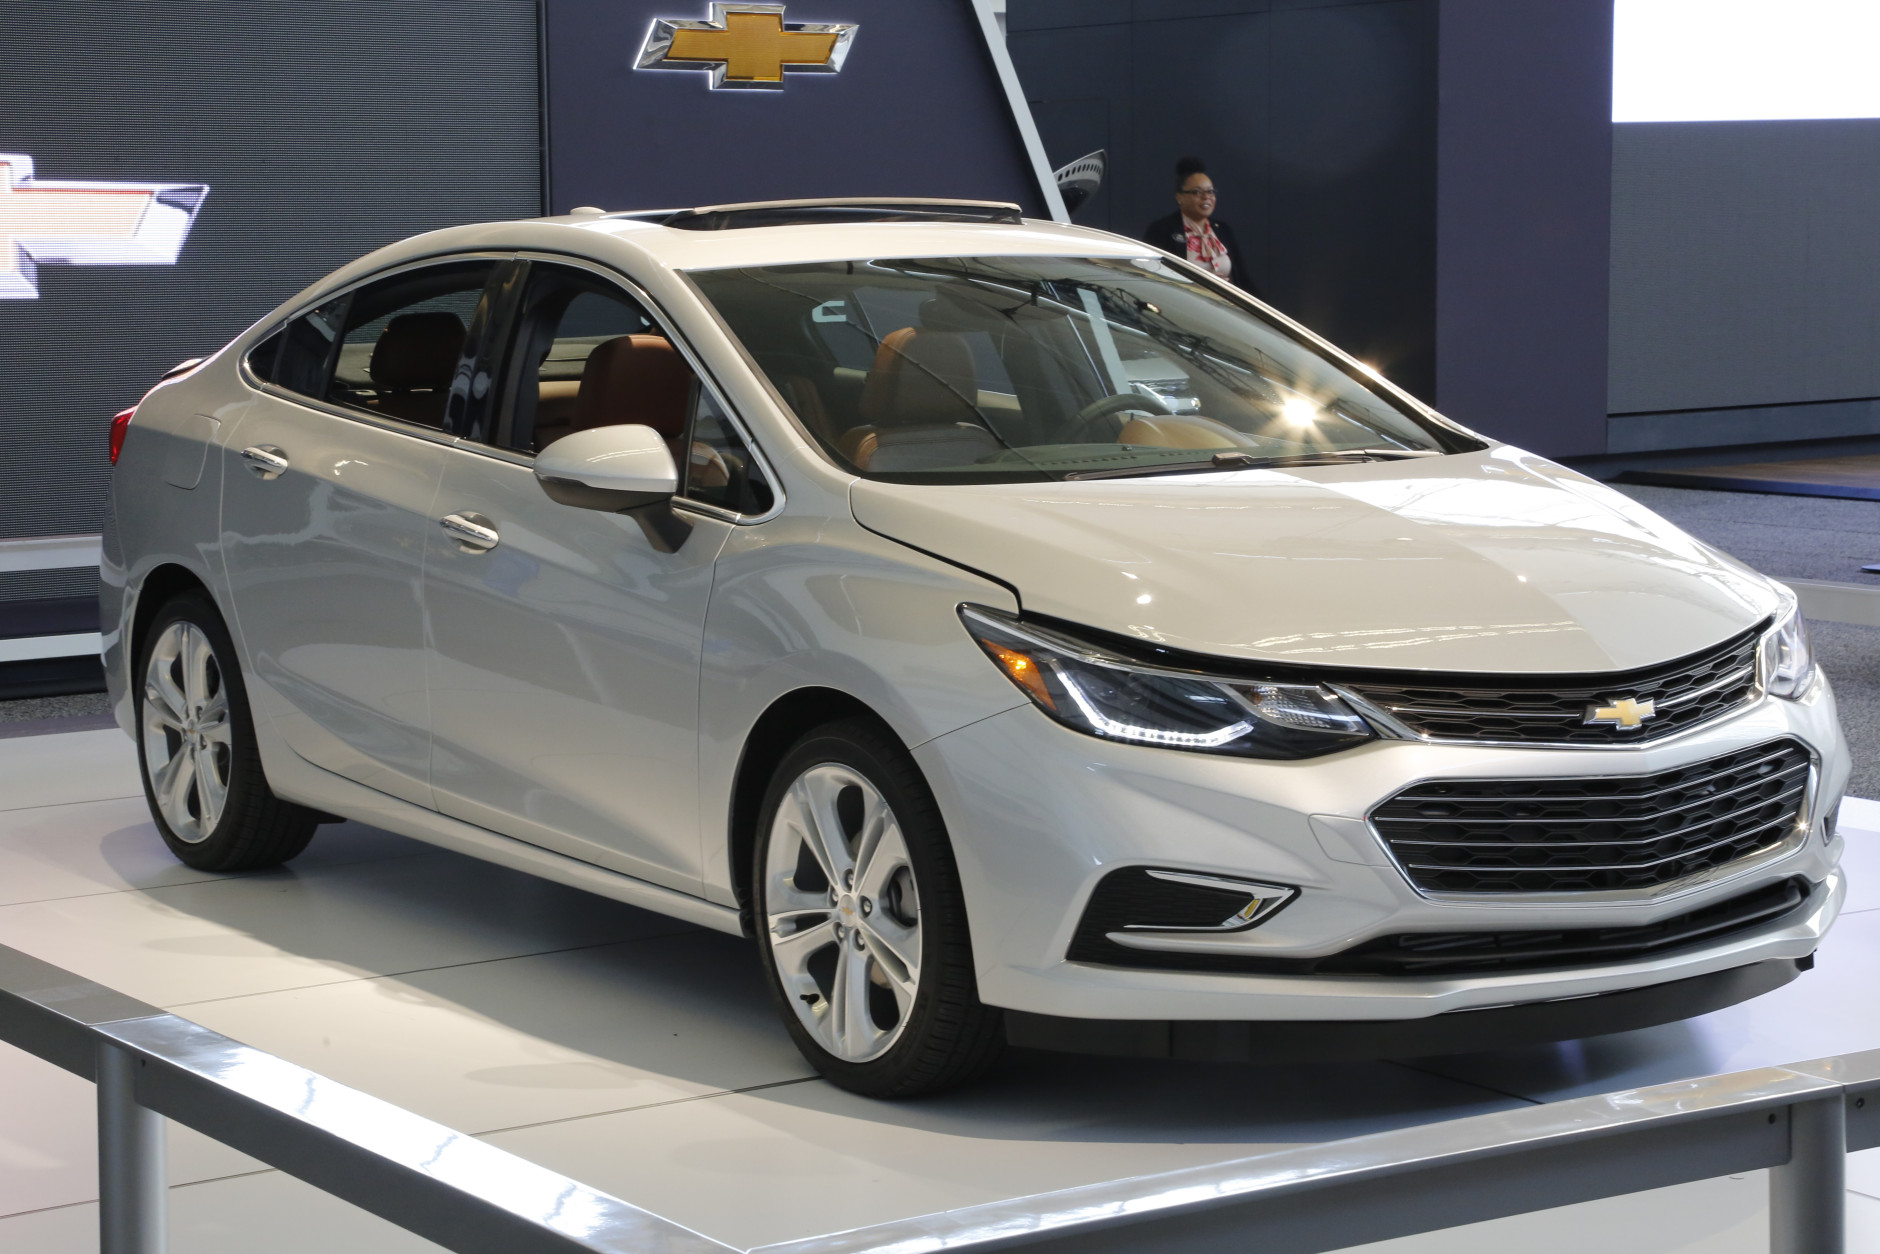 FILE - In this Feb. 11, 2016 photo, a  2016 Chevrolet Cruze is on display at the Pittsburgh International Auto Show in Pittsburgh. With 153 horsepower, the 2016 Cruze is more powerful than its predecessor.  .(AP Photo/Gene J. Puskar)